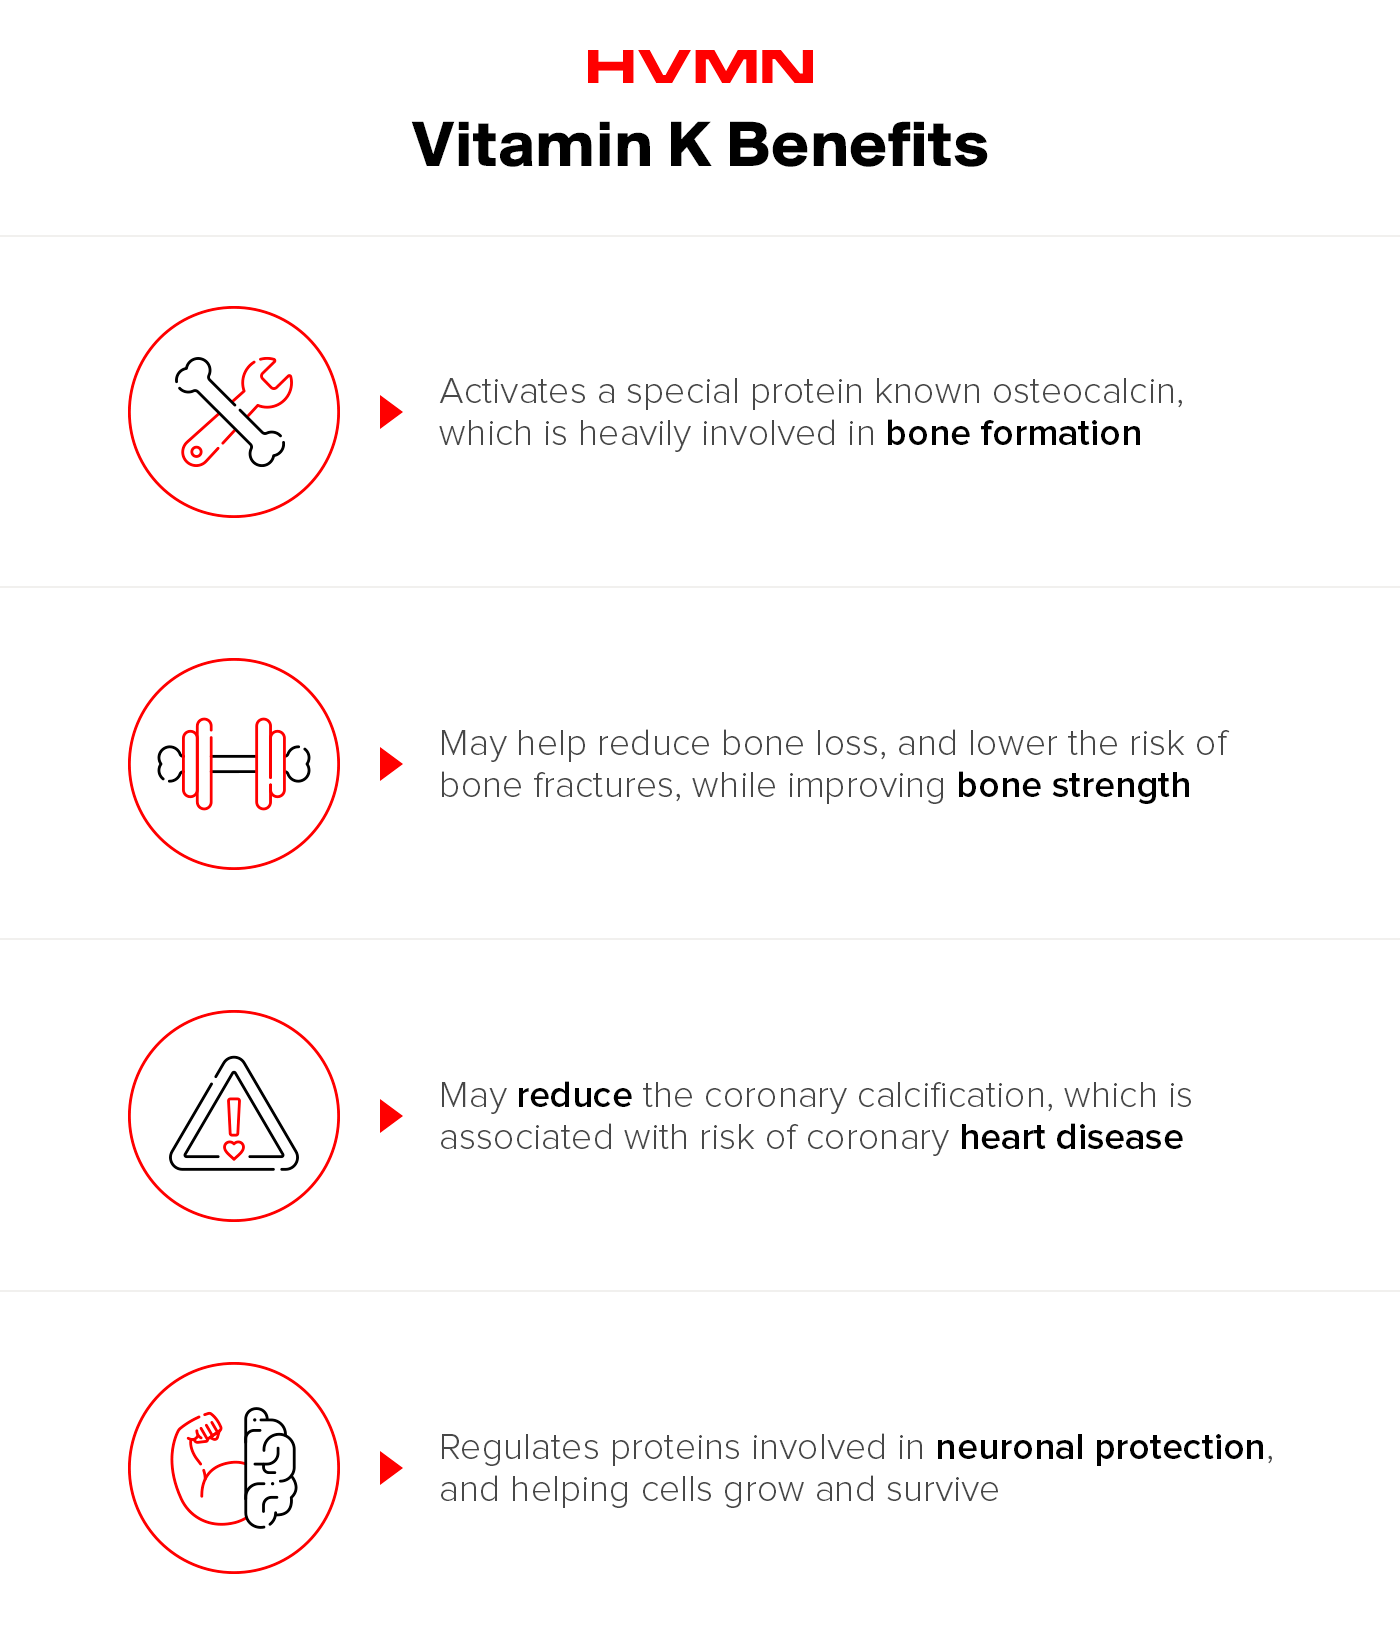 Illustrations of a bone and wrench, a dumbbell, a caution sign, and a brain with flexing arms, all showing the benefits of vitamin k